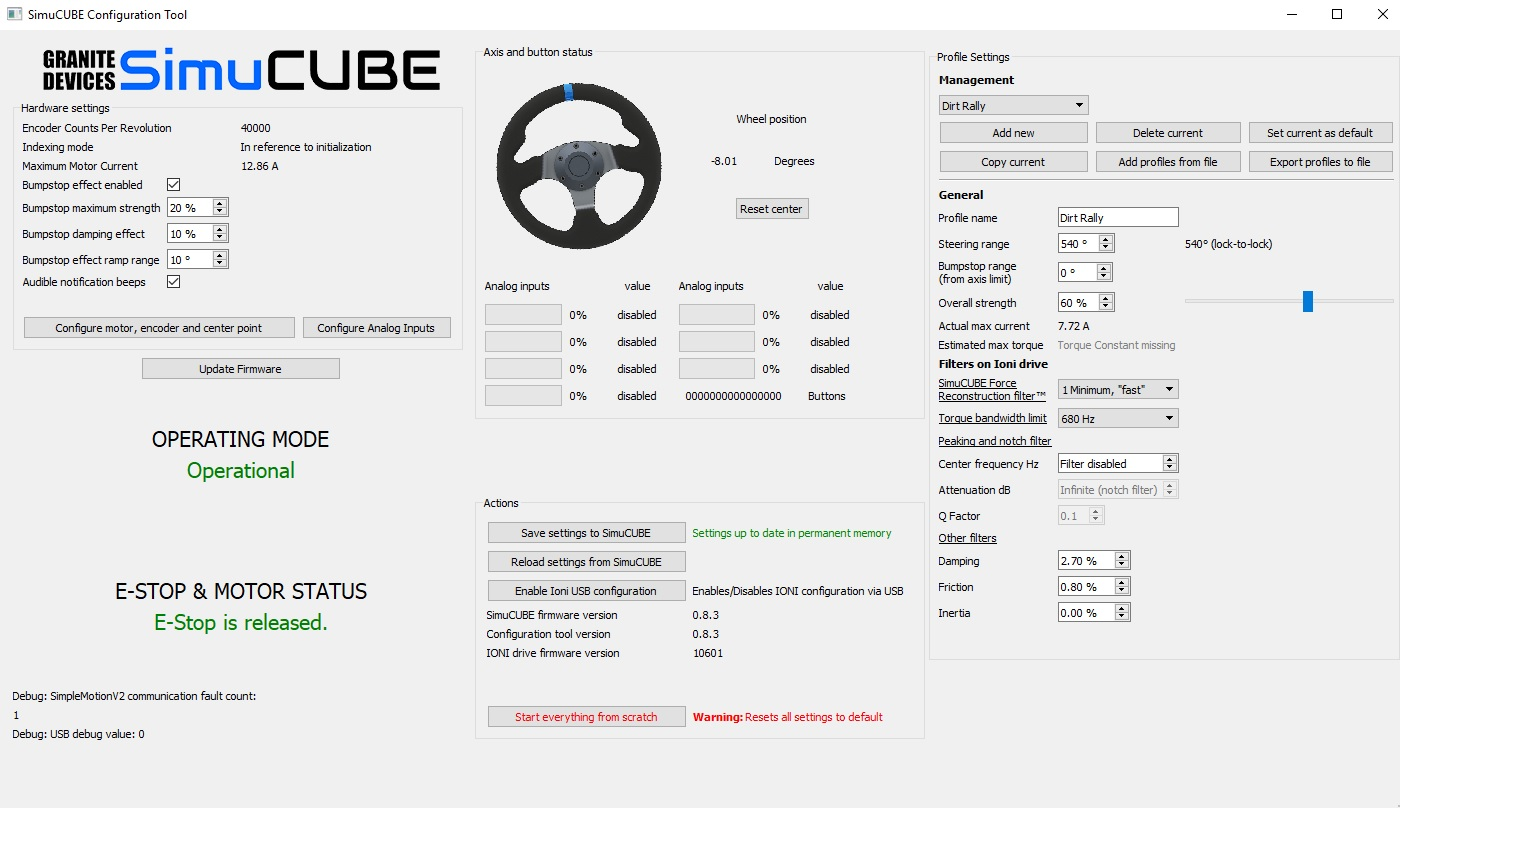 Simucube settings for Dirt rally - Games - Granite Devices